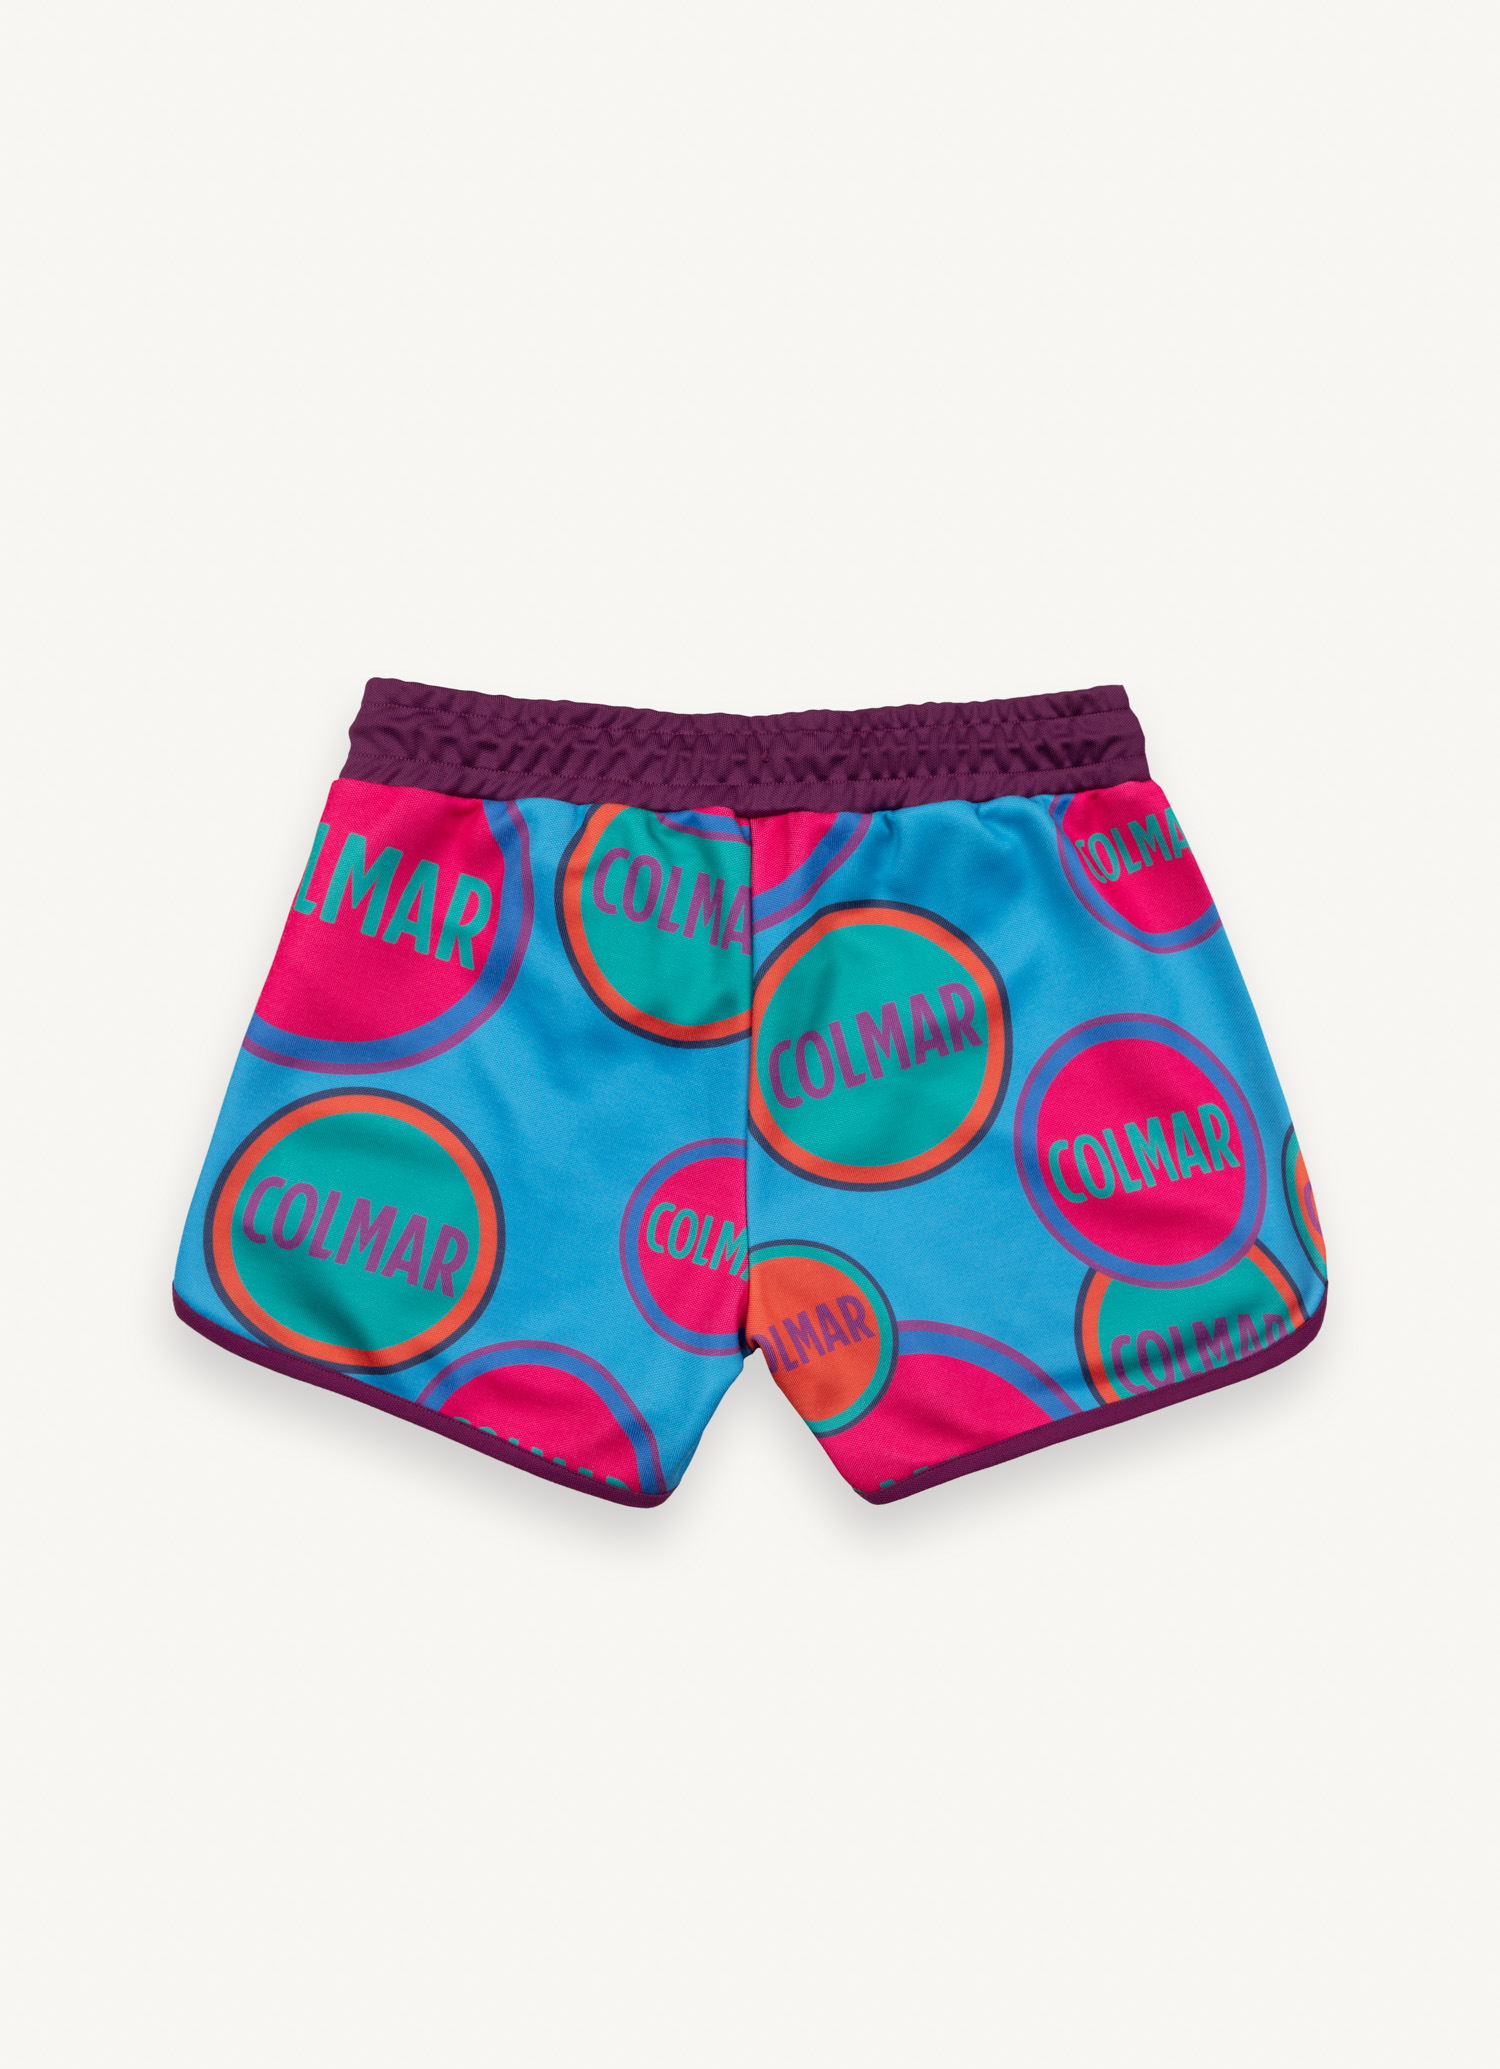 SHOPPING ON LINE COLMAR SHORTS ORIGINALS BY ORIGINALS CON STAMPA ALLOVER NEW COLLECTION WOMEN'S SPRING SUMMER 2020